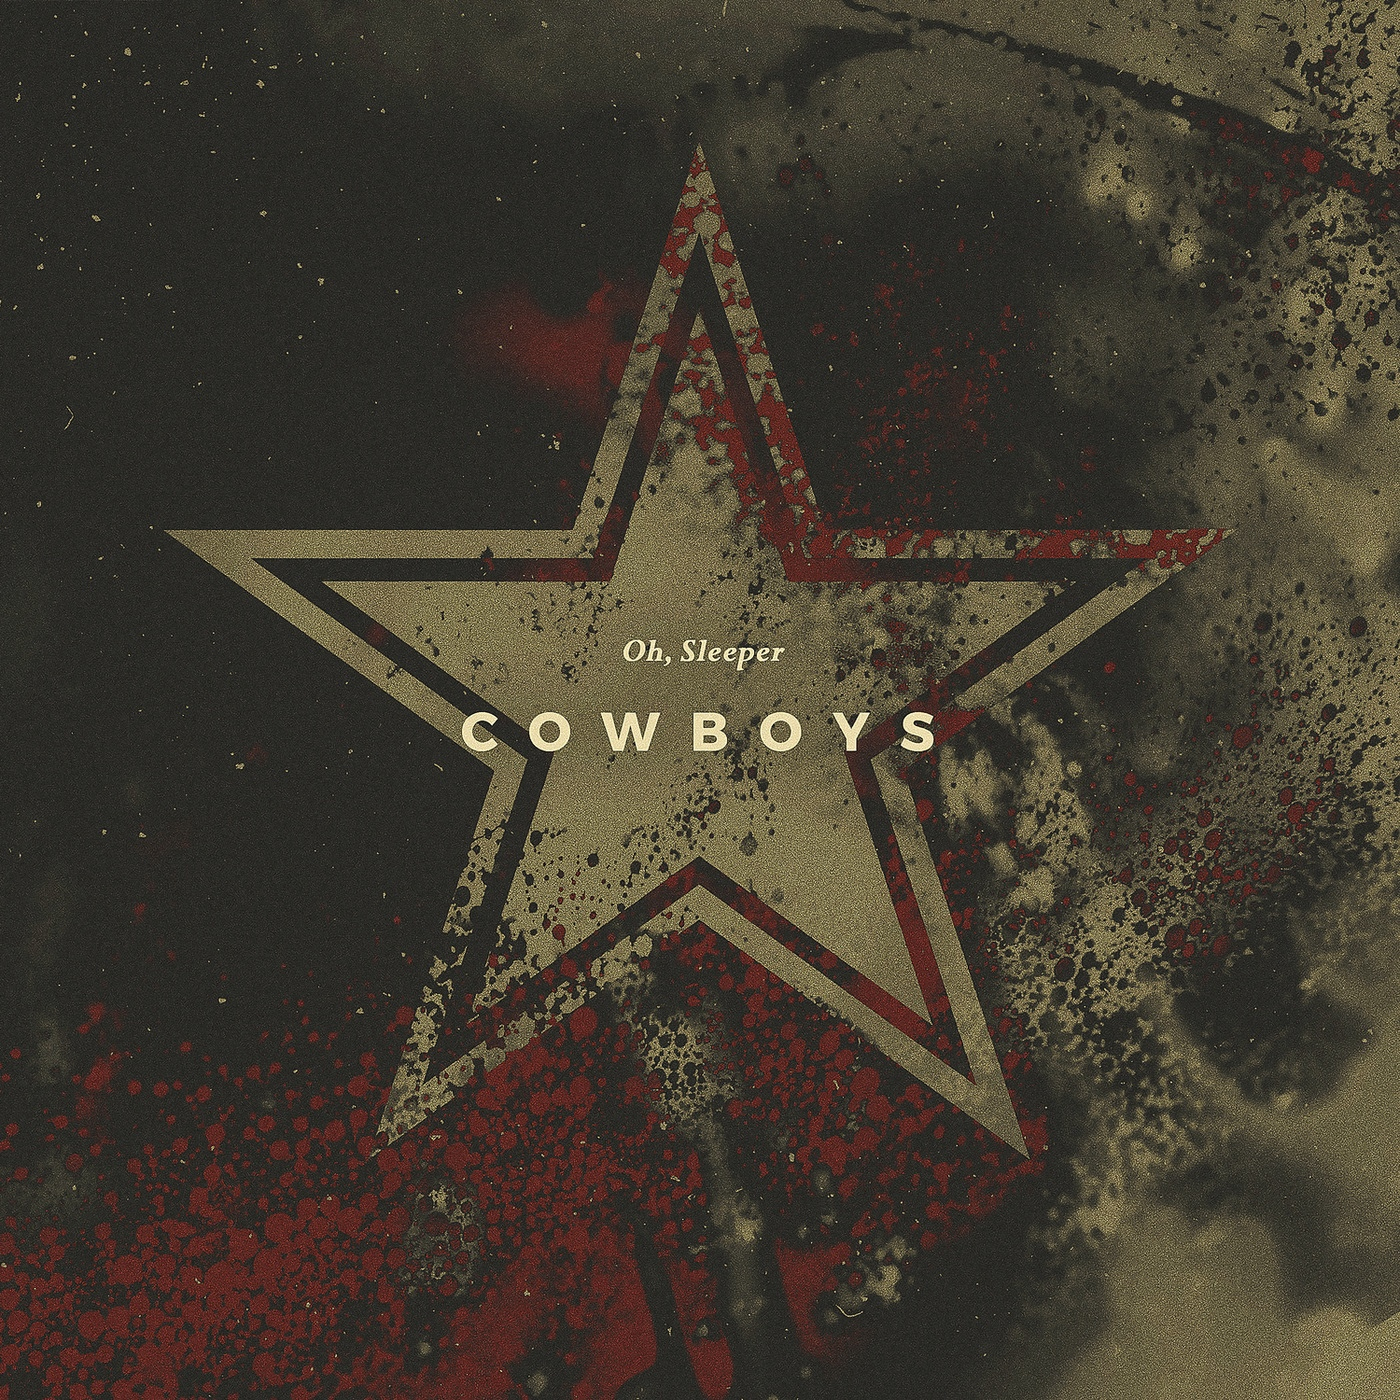 Oh, Sleeper - COWBOYS [single] (2019)